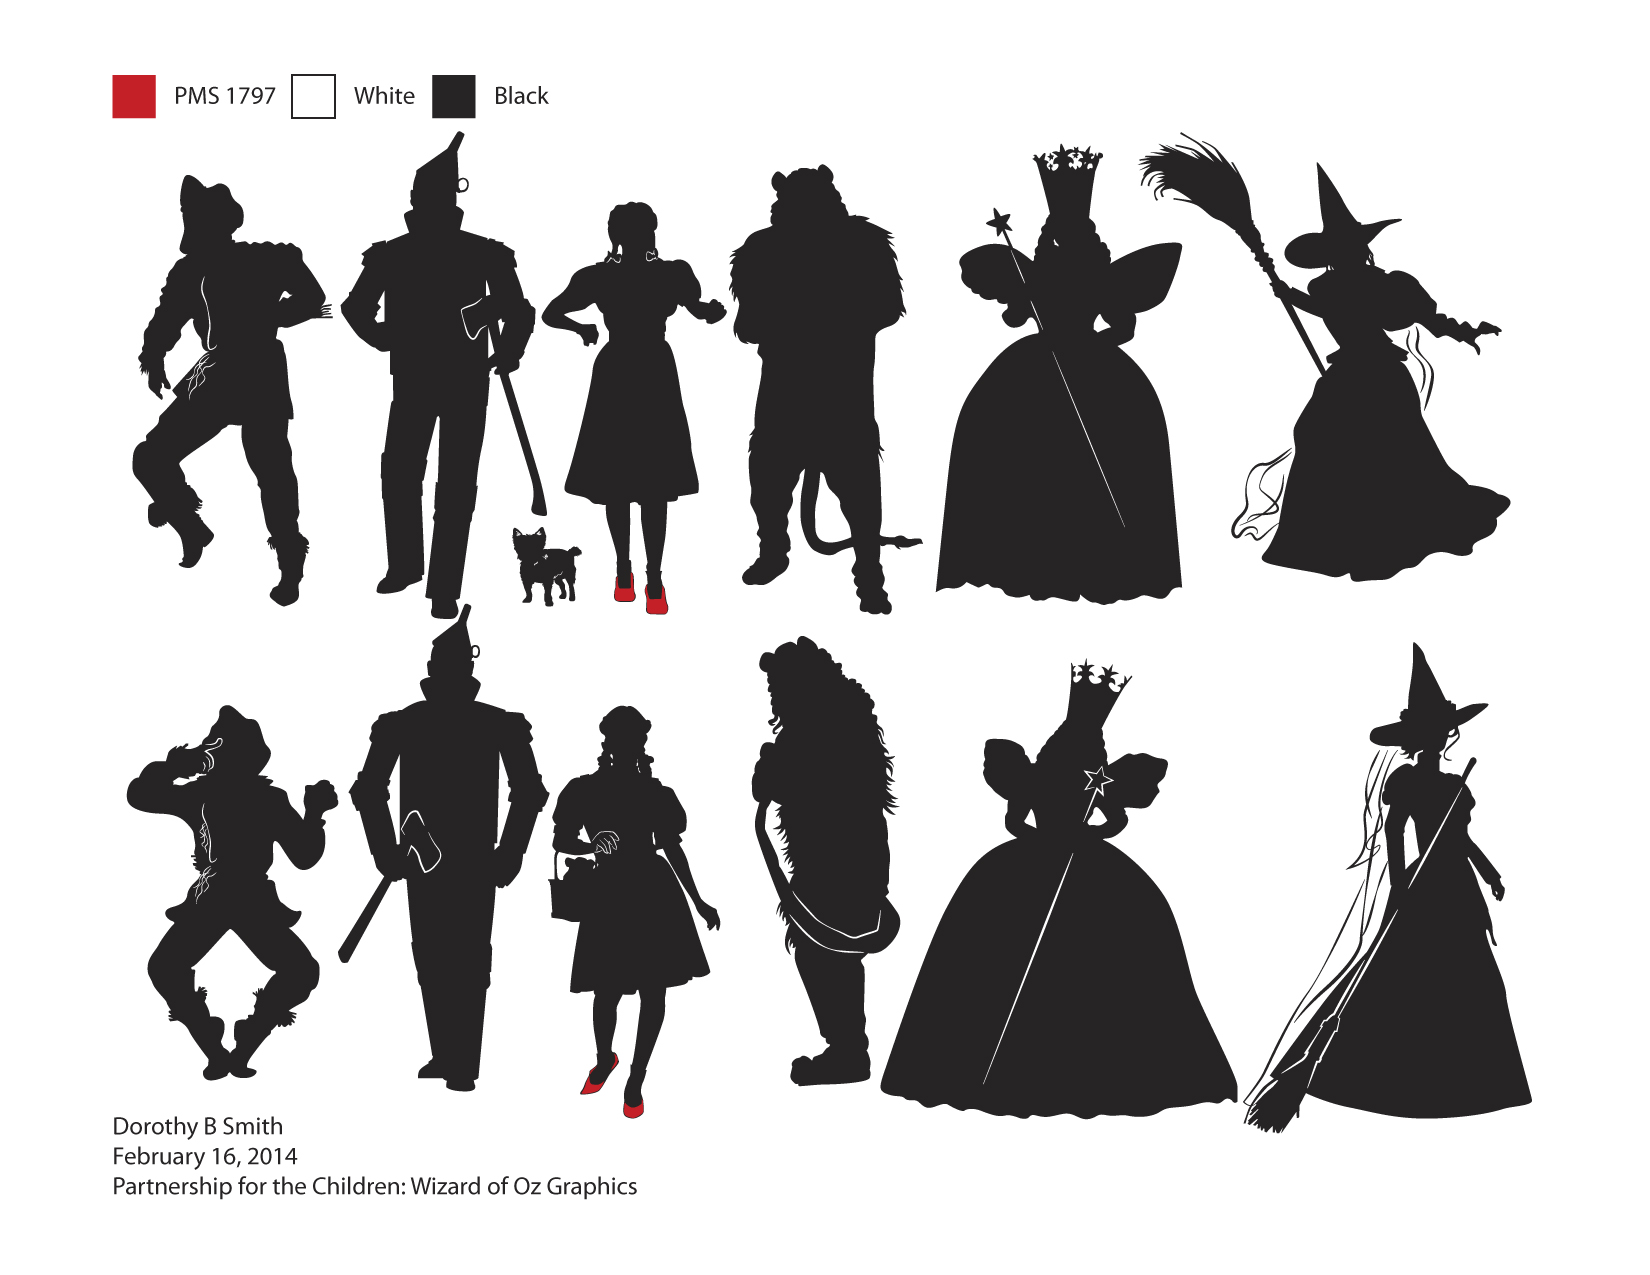 Costume designer logo black and white clipart freeuse library 17+ images about Silhouette on Pinterest | Clip art, American ... freeuse library